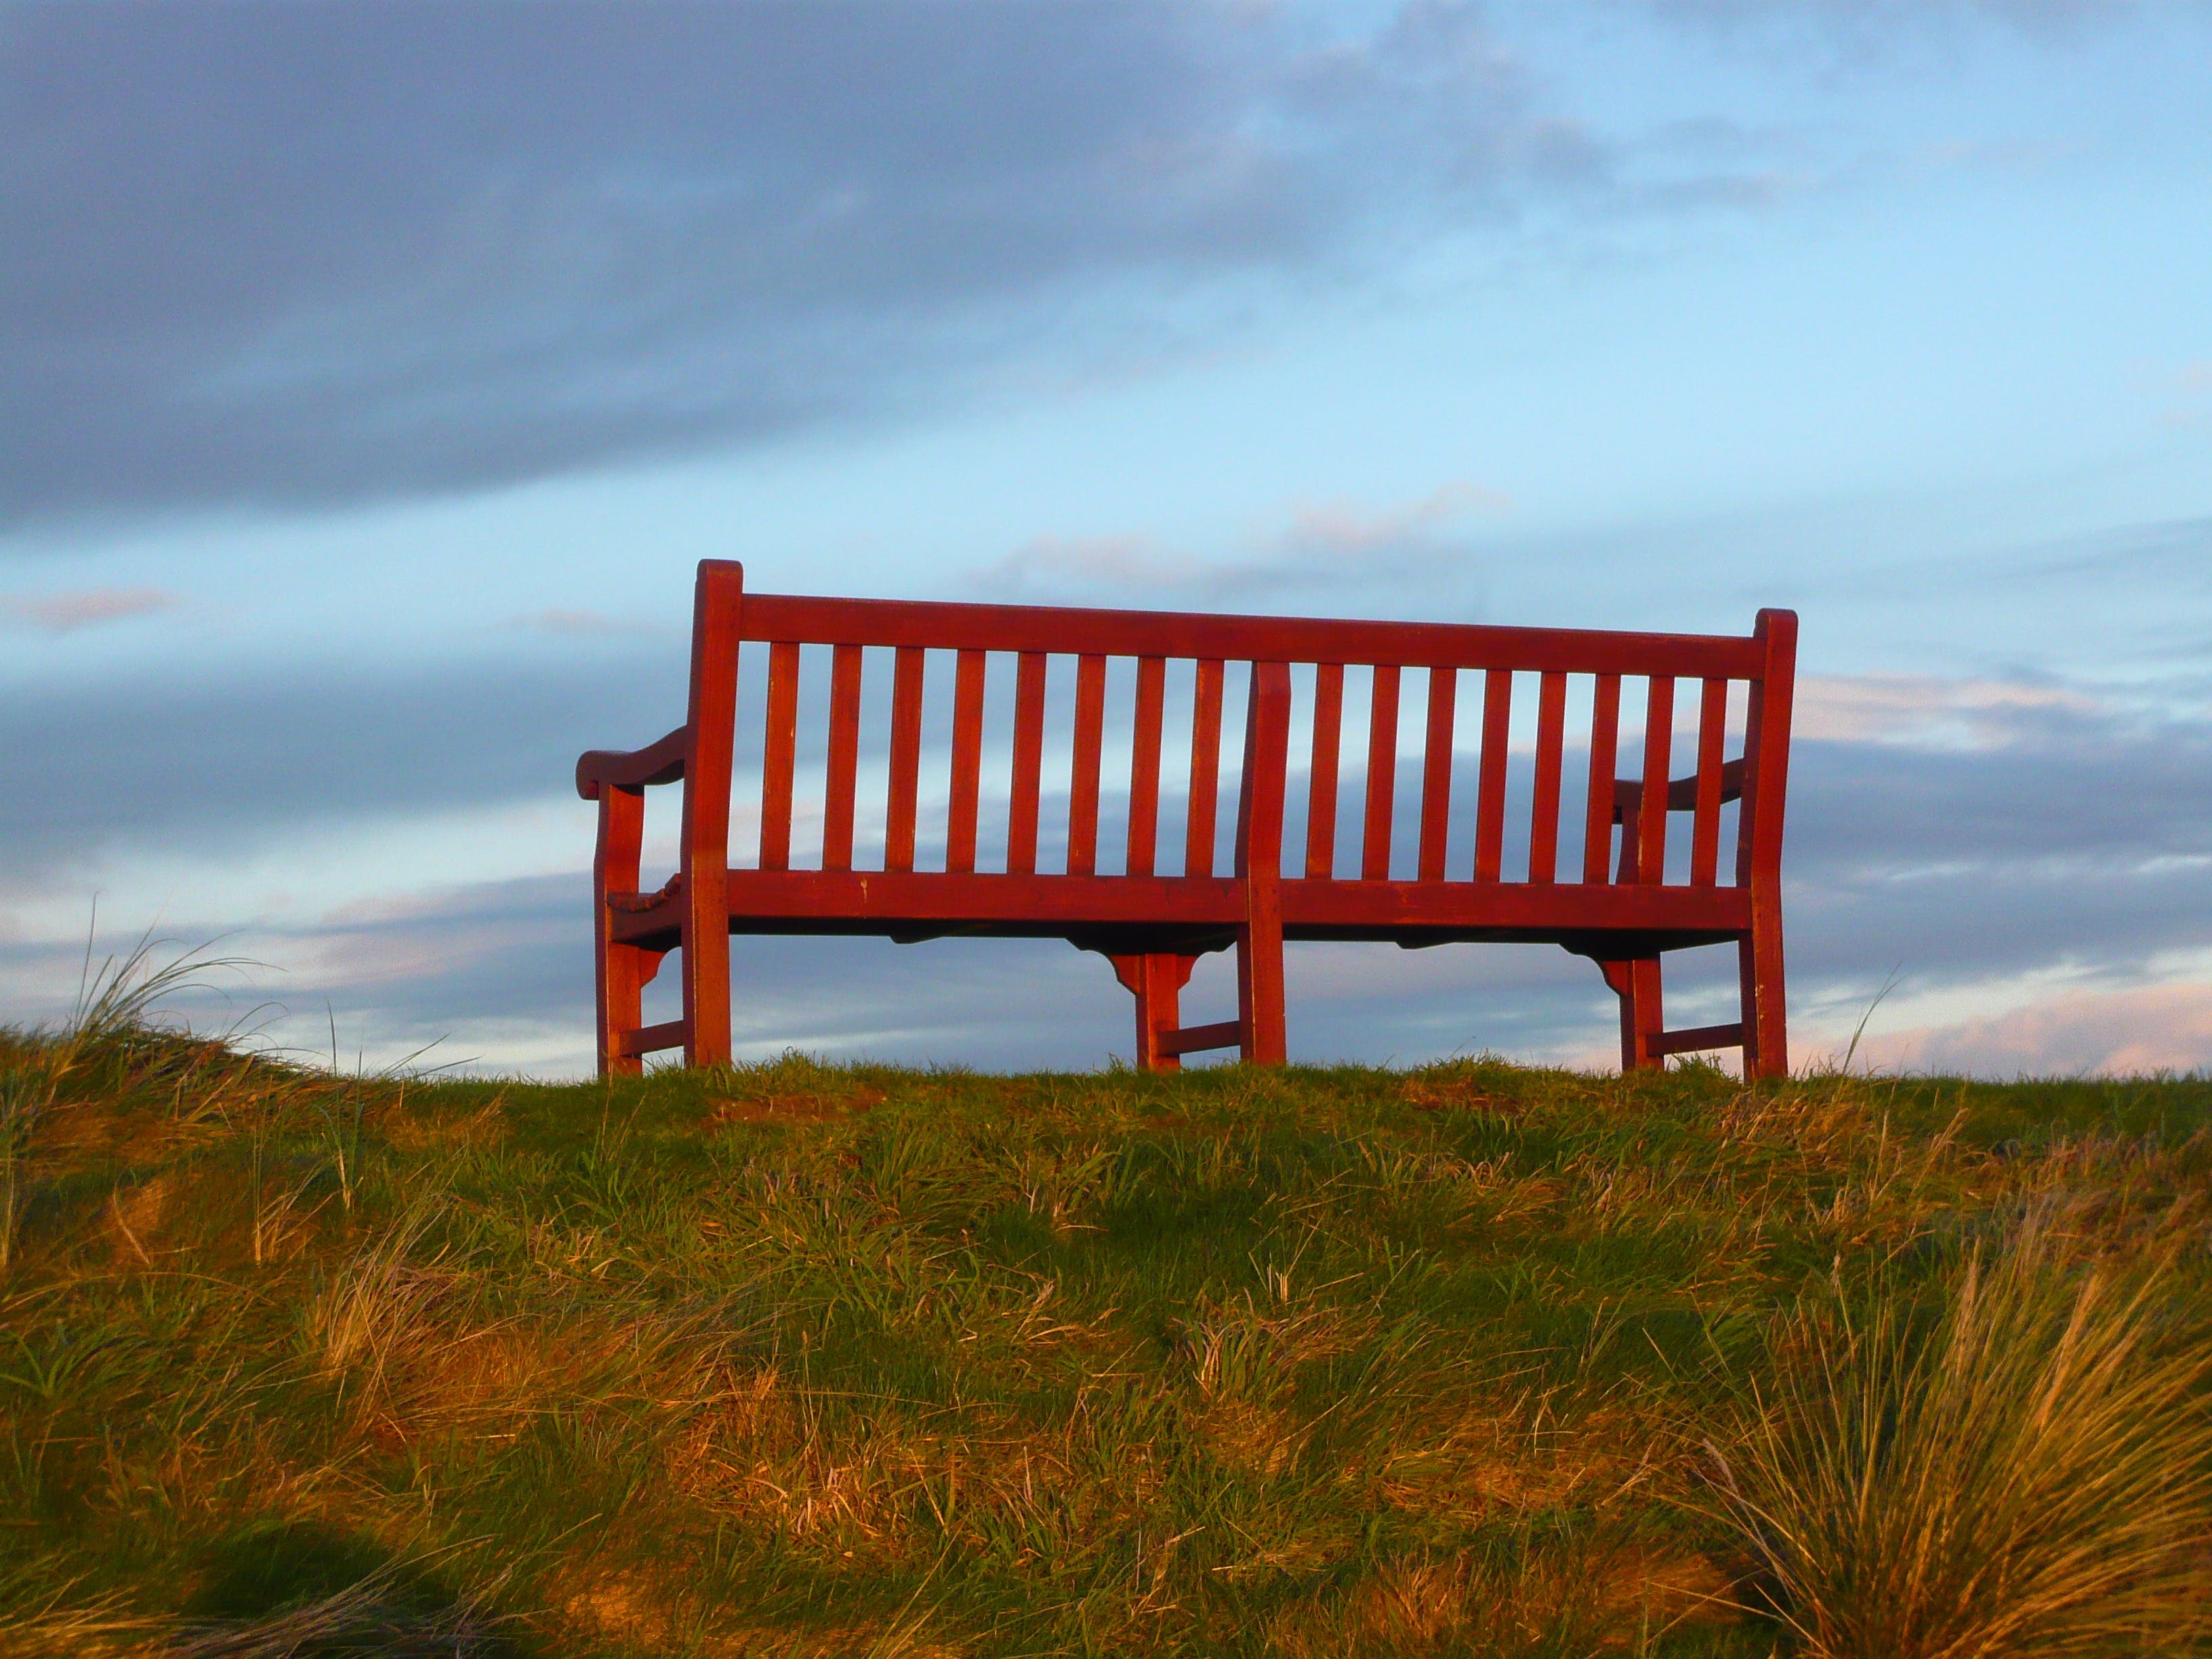 Brown Wooden Bench on Green Grass Field